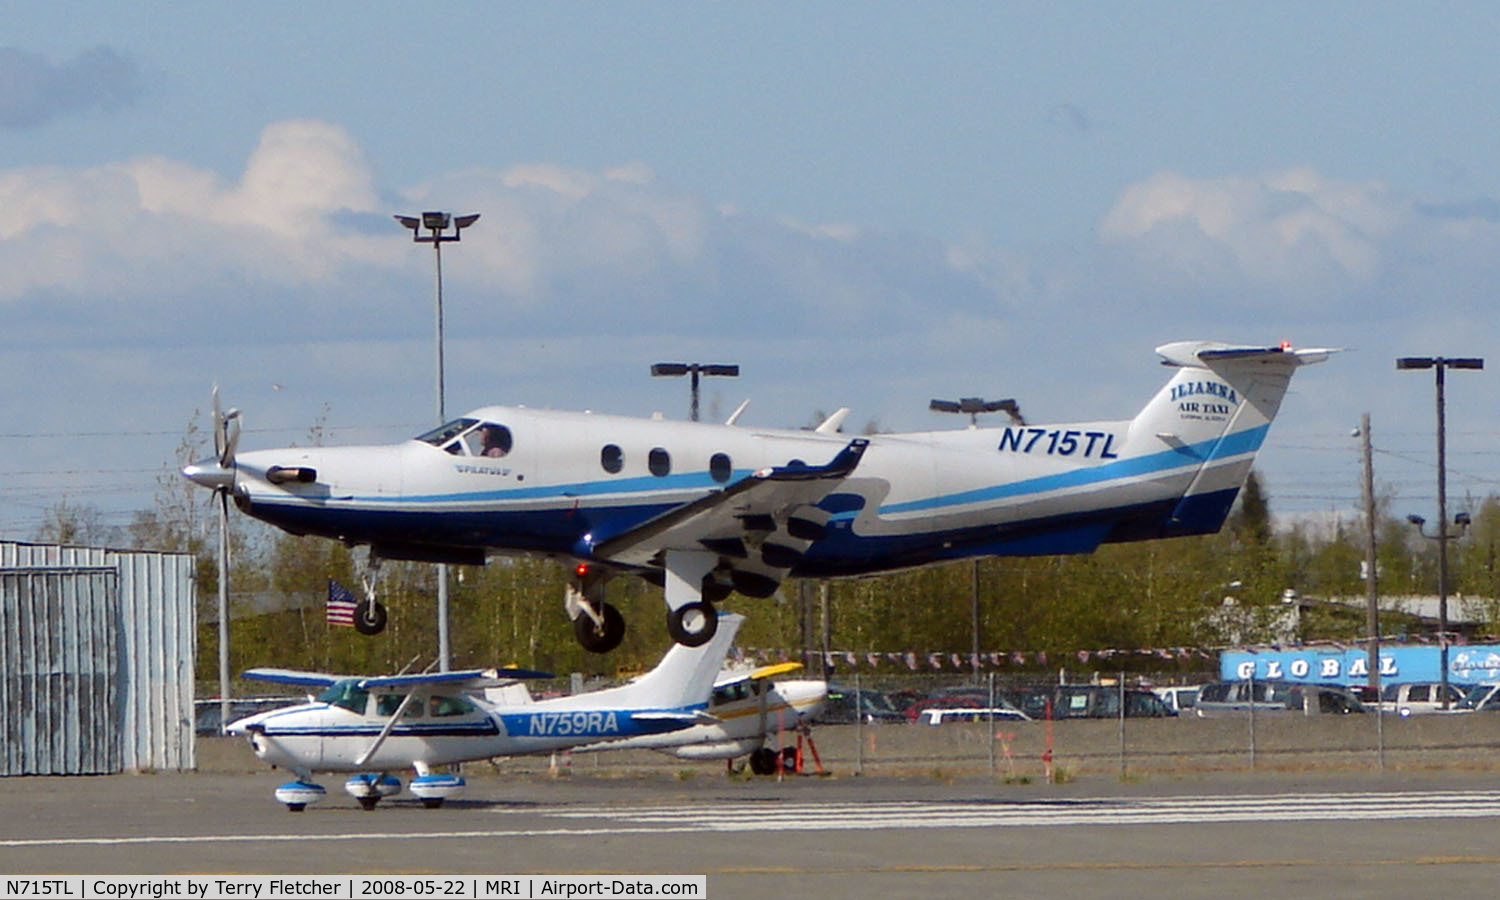 N715TL, 2004 Pilatus PC-12/45 C/N 548, Pilatus doing touch and gos at Merrill Field, Anchorage